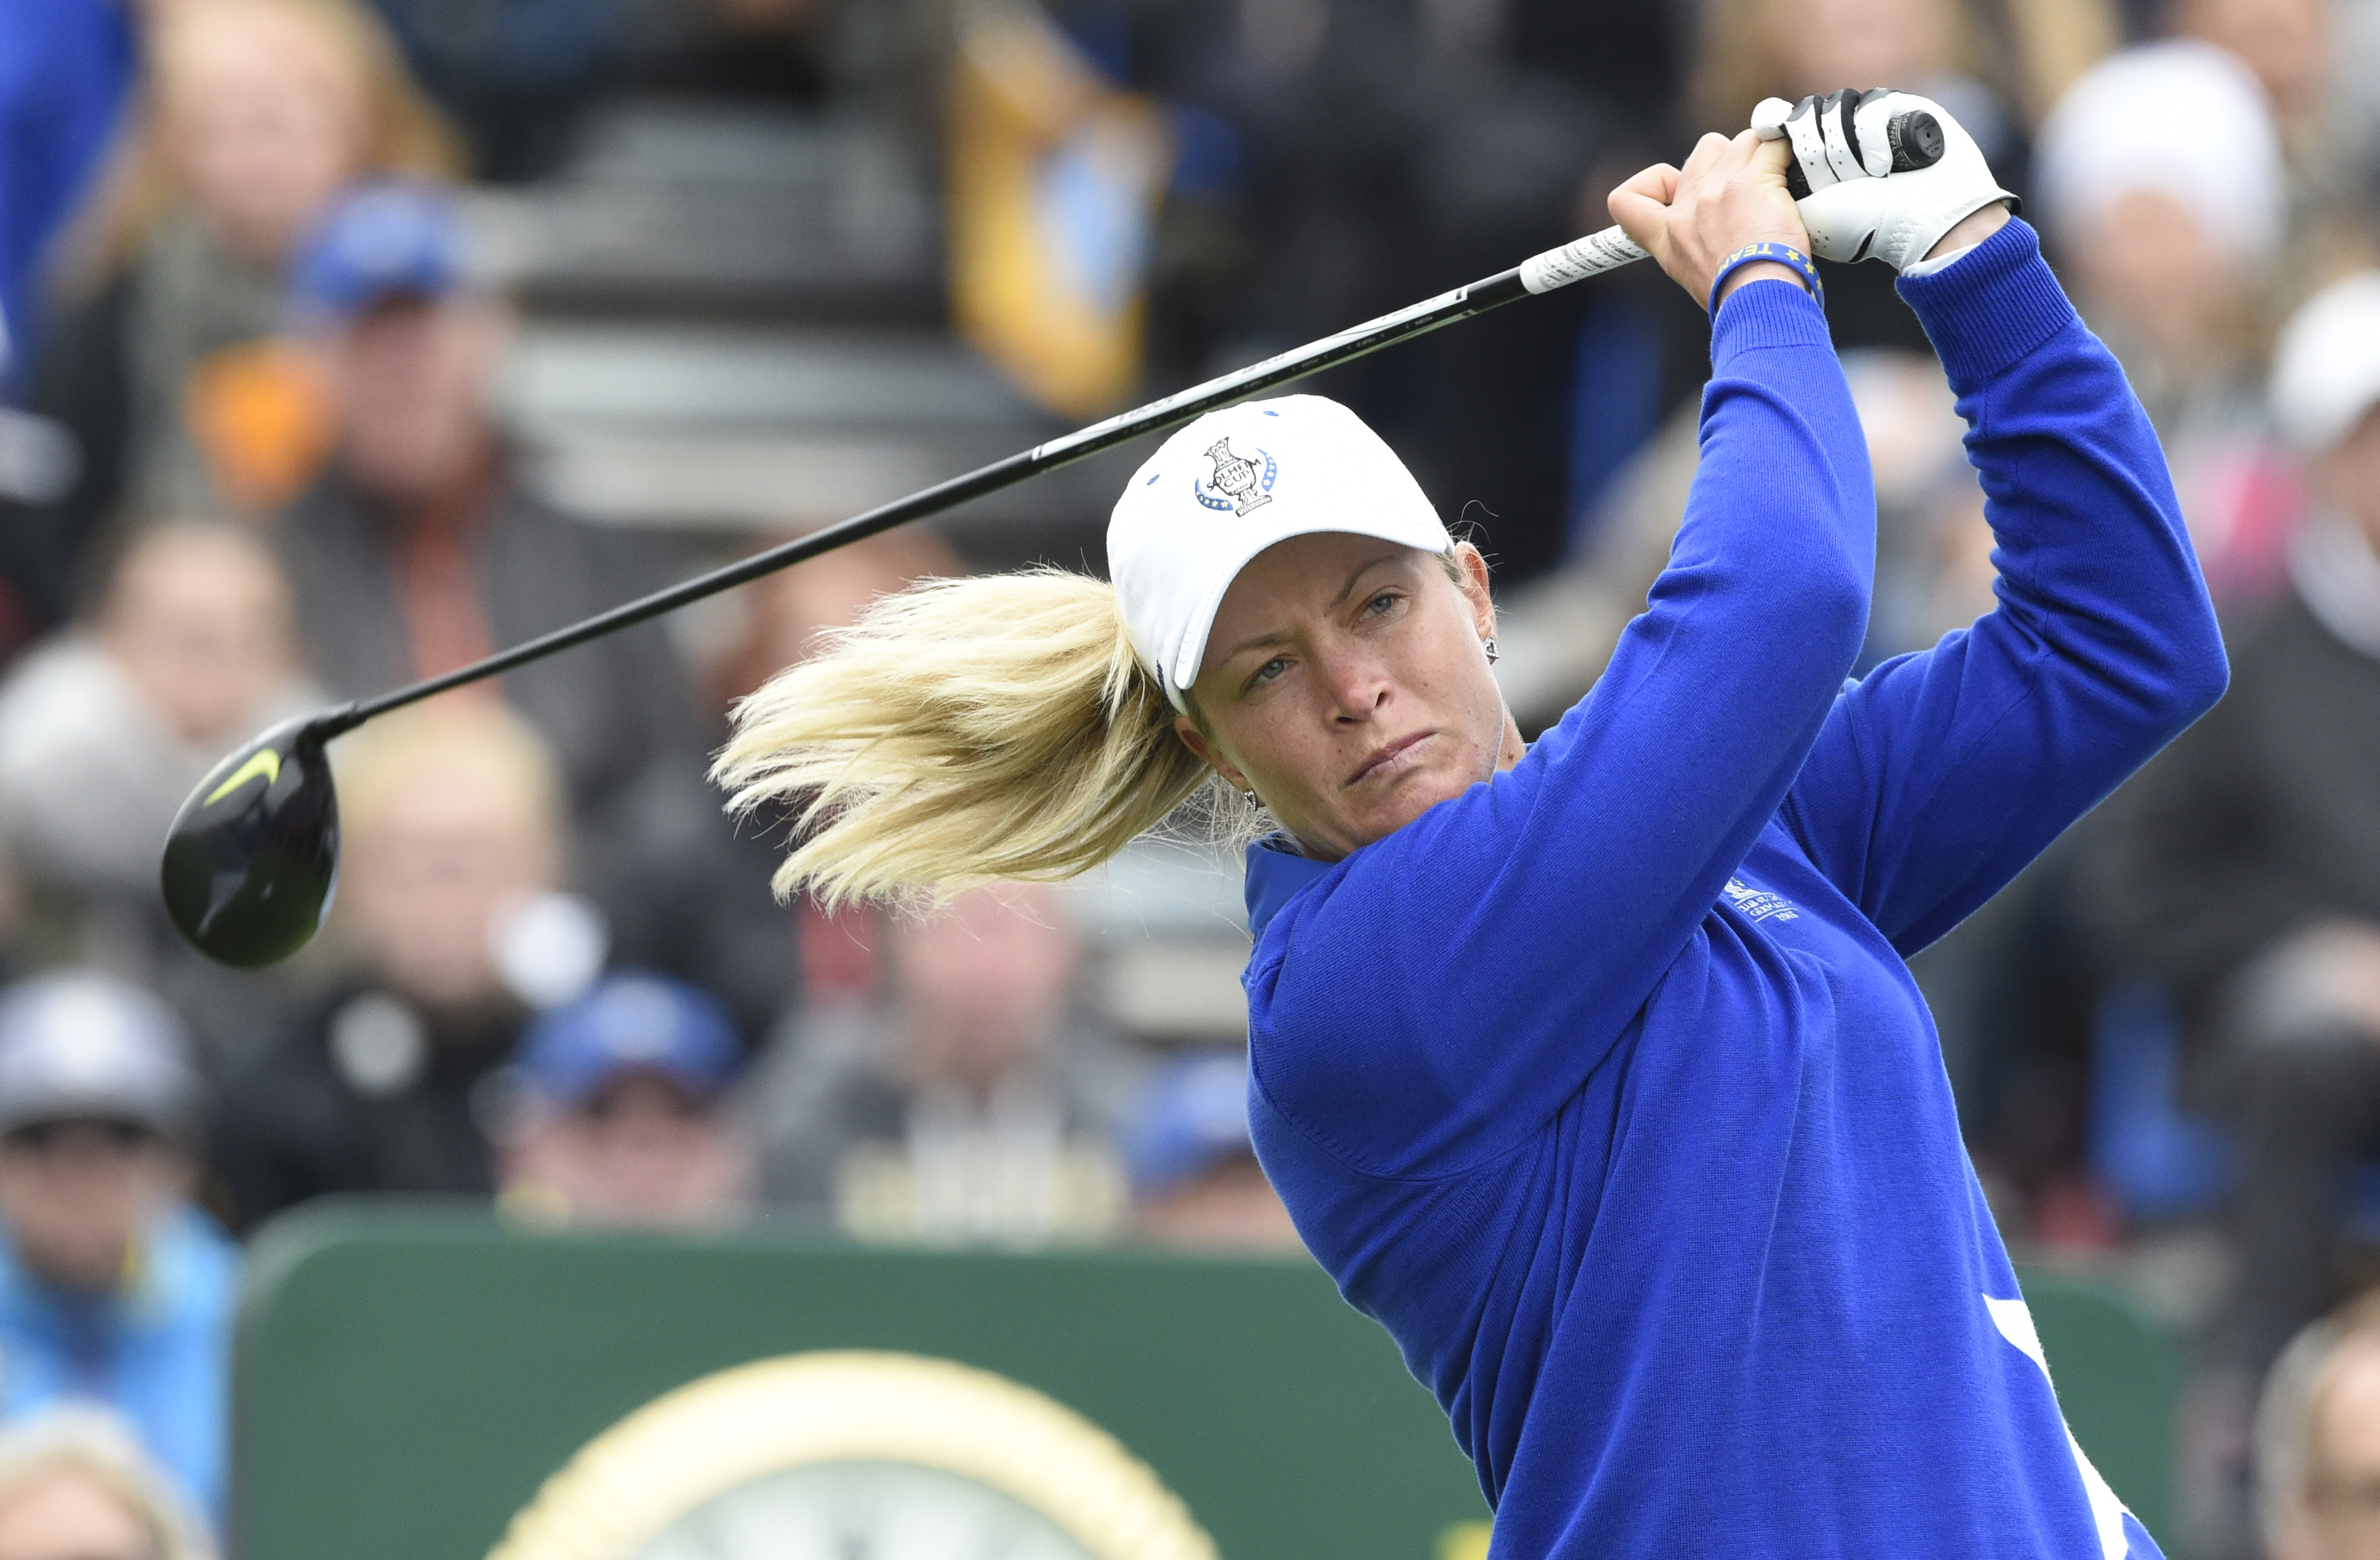 Europe's Suzann Pettersen of Norway tees off in the singles matches on Day3 of the Golf Solheim Cup in St.Leon-Rot, Germany, Sunday, Sept. 20, 2015. (AP Photo/Jens Meyer)